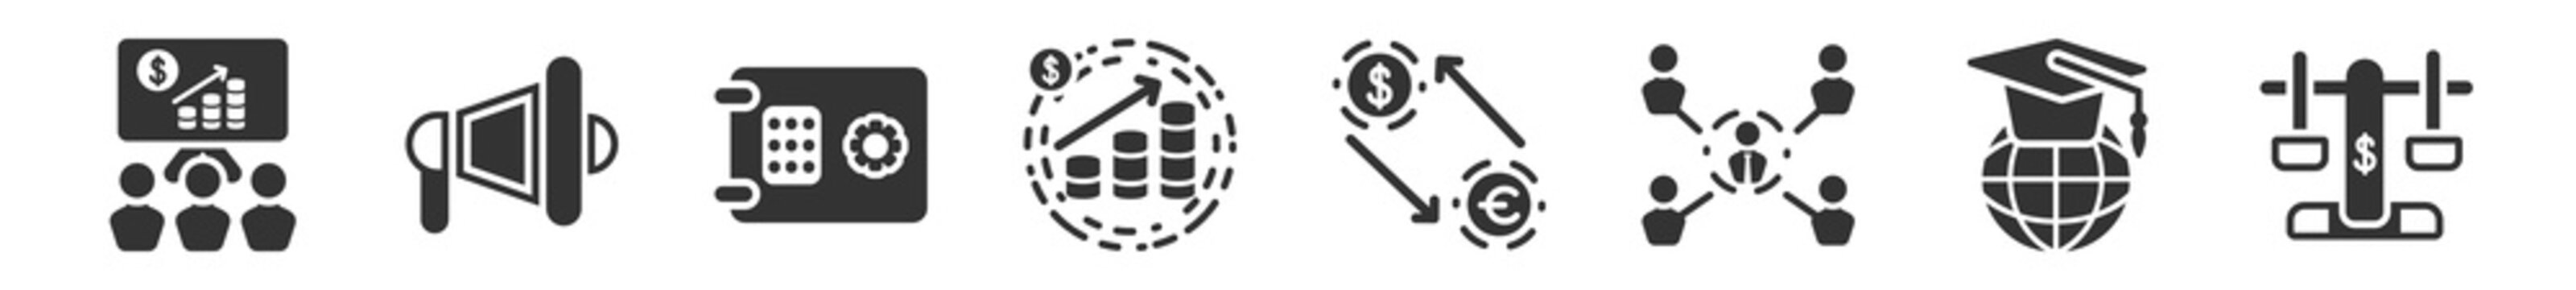 filled set of digital economy icons. glyph vector icons such as presentation, advertising, safebox, profits, exchange, balance. vector illustration.